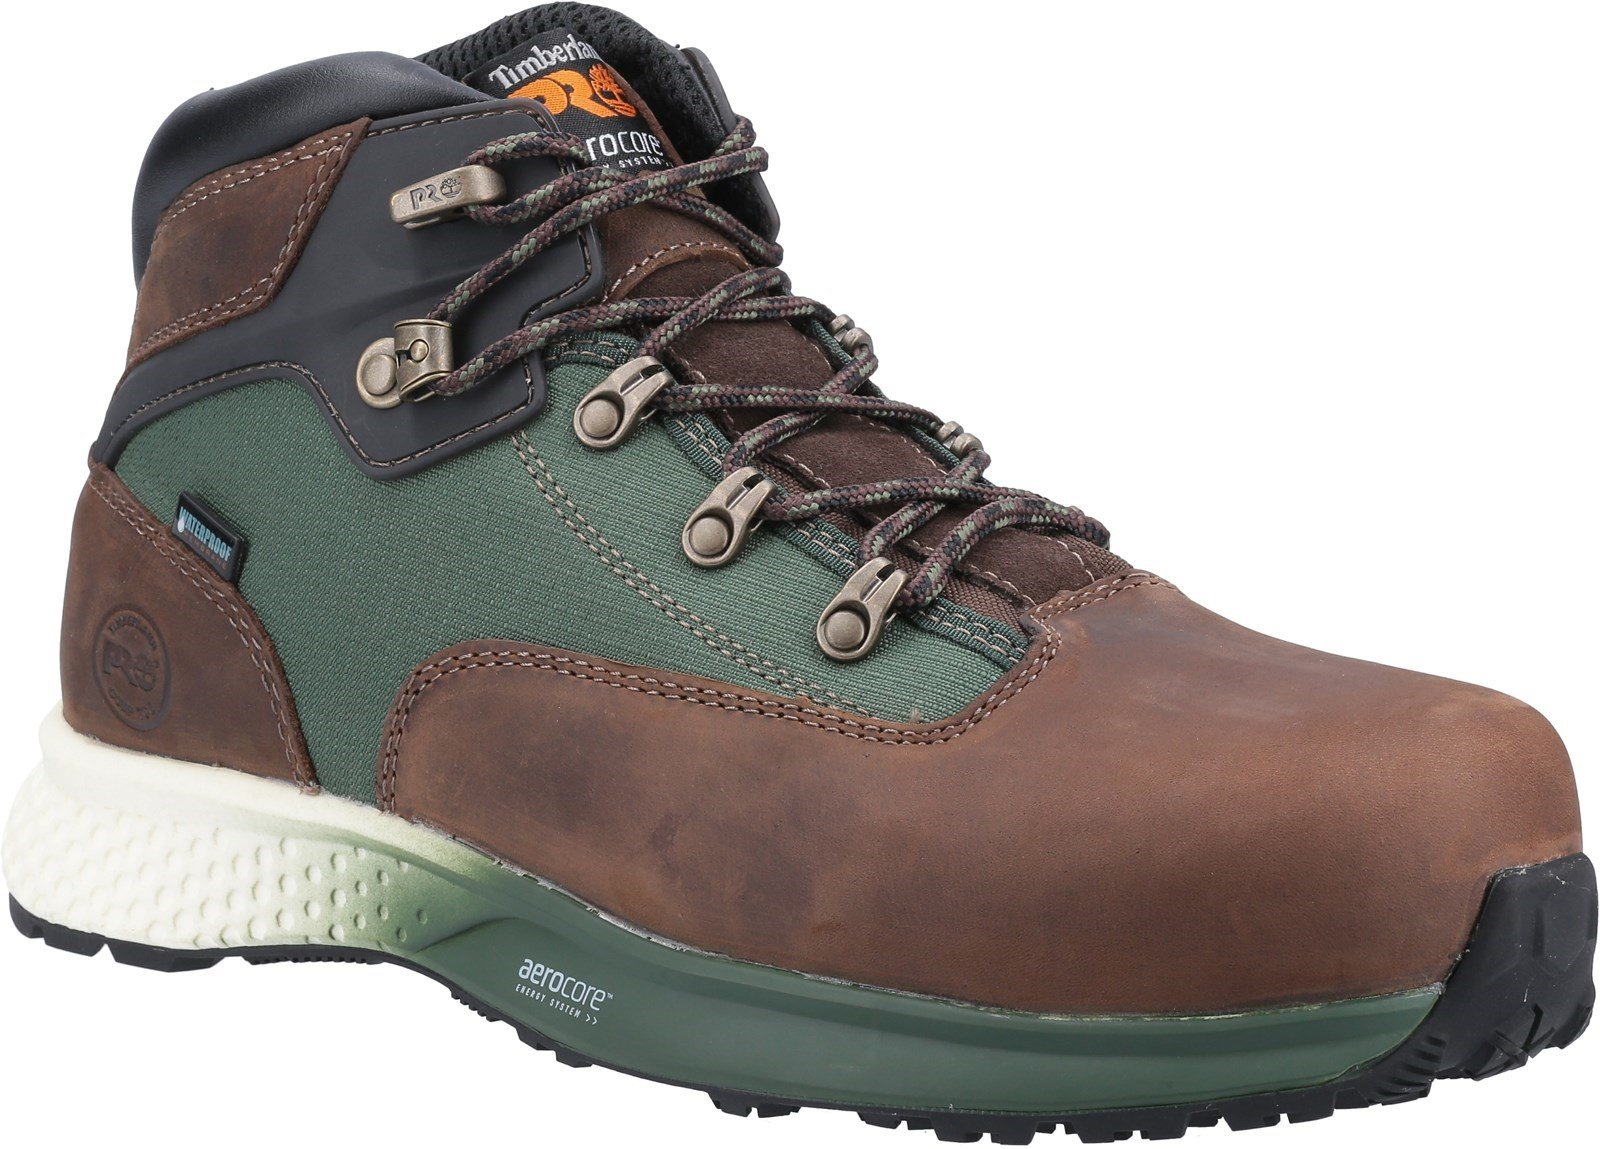 Timberland Pro Unisex Euro Hiker Composite Safety Boot Various Colours 32727 - Brown/Green 6